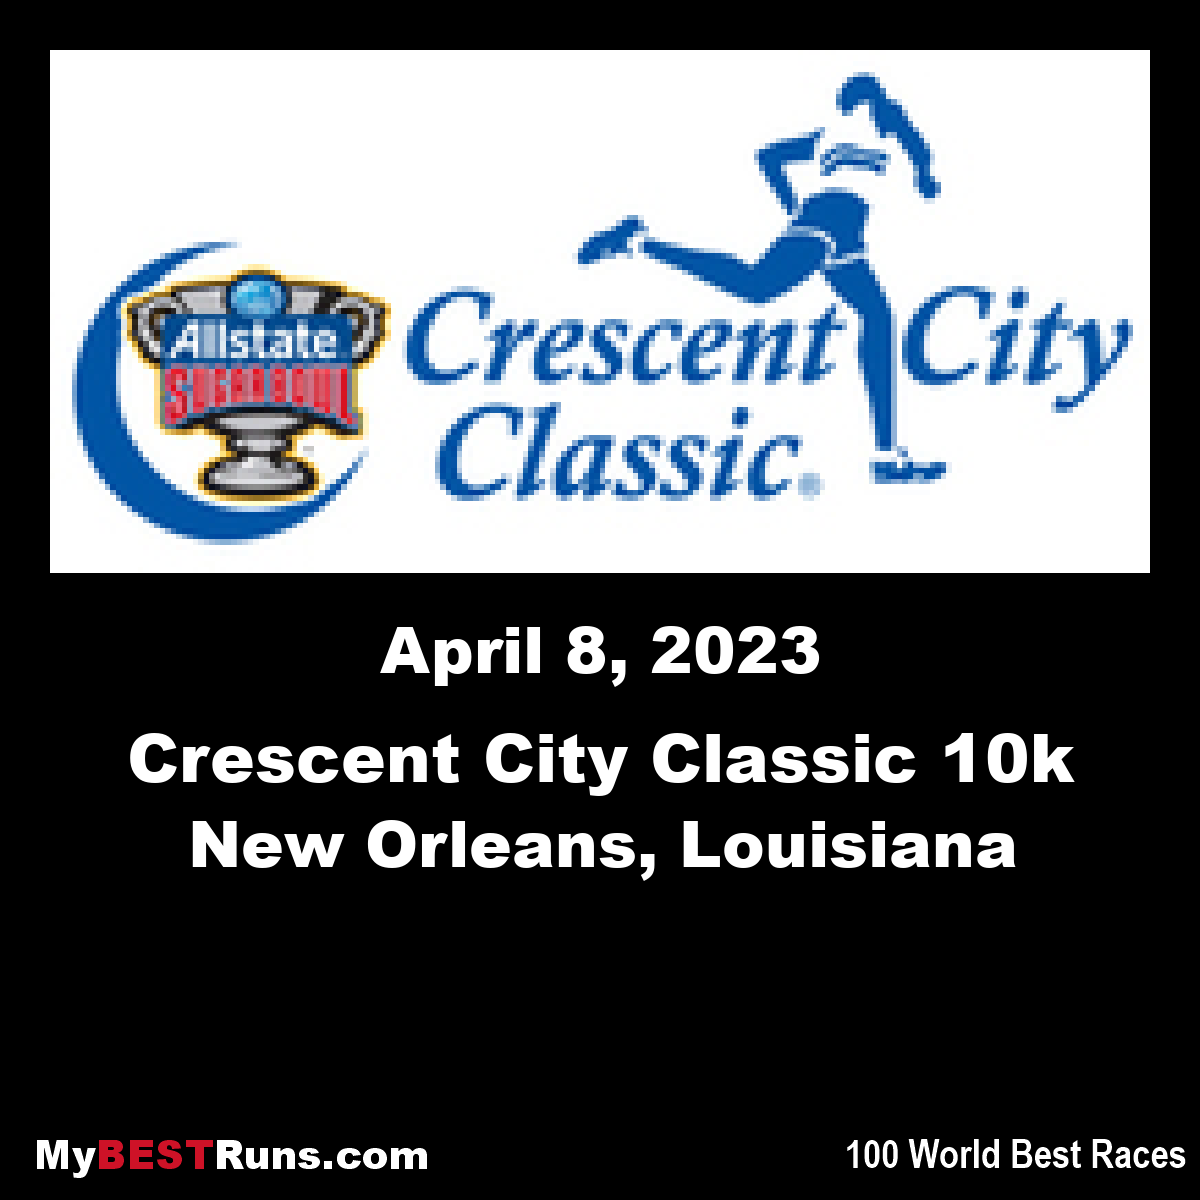 Allstate Sugar Bowl Crescent City Classic 10k